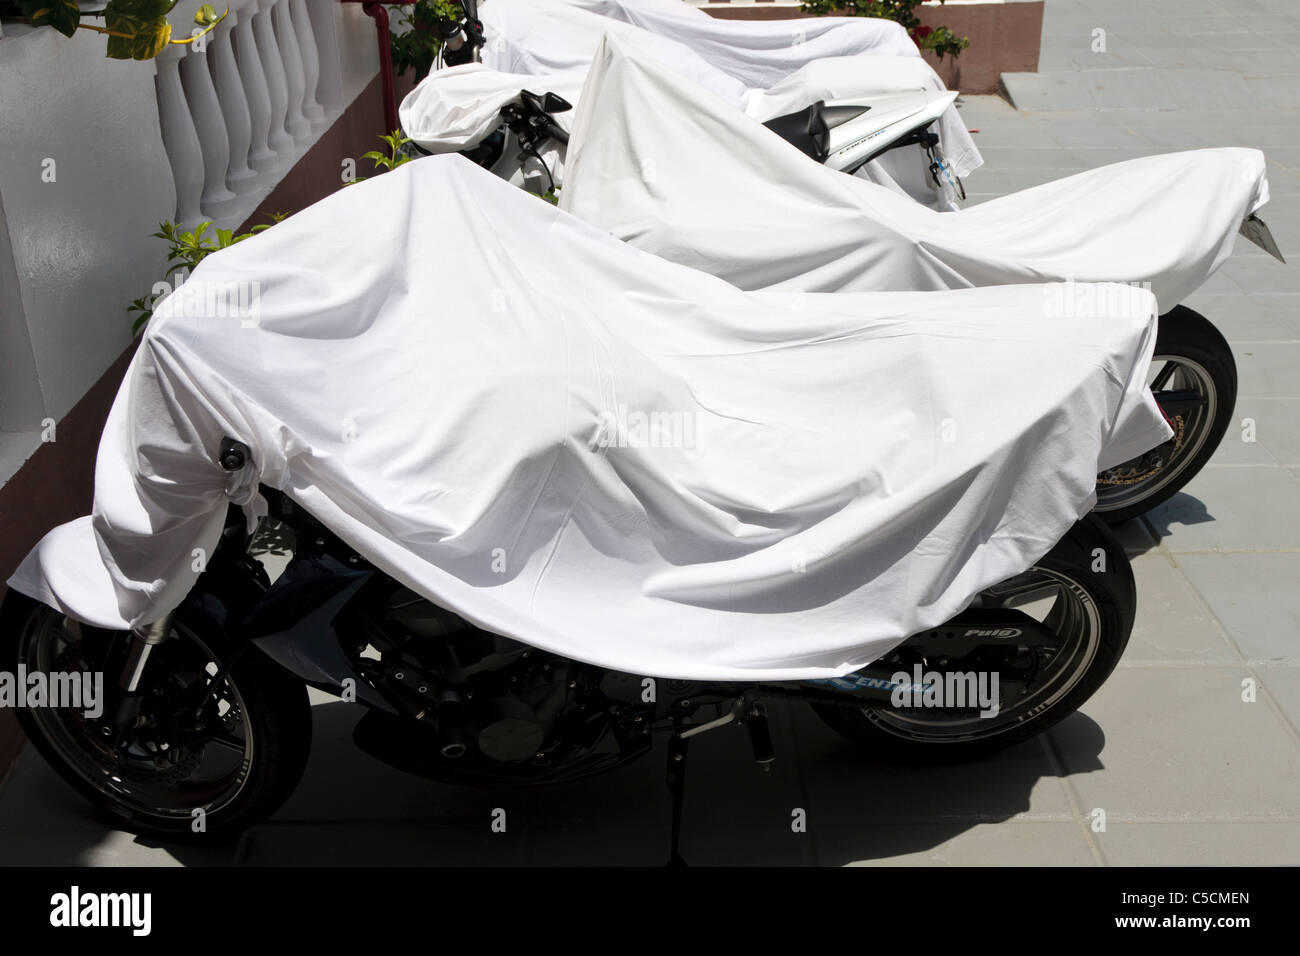 Sheets thrown over motorcycles to keep them cool in the hot summer sun outside an apartment block in Valle Gran - Stock Image